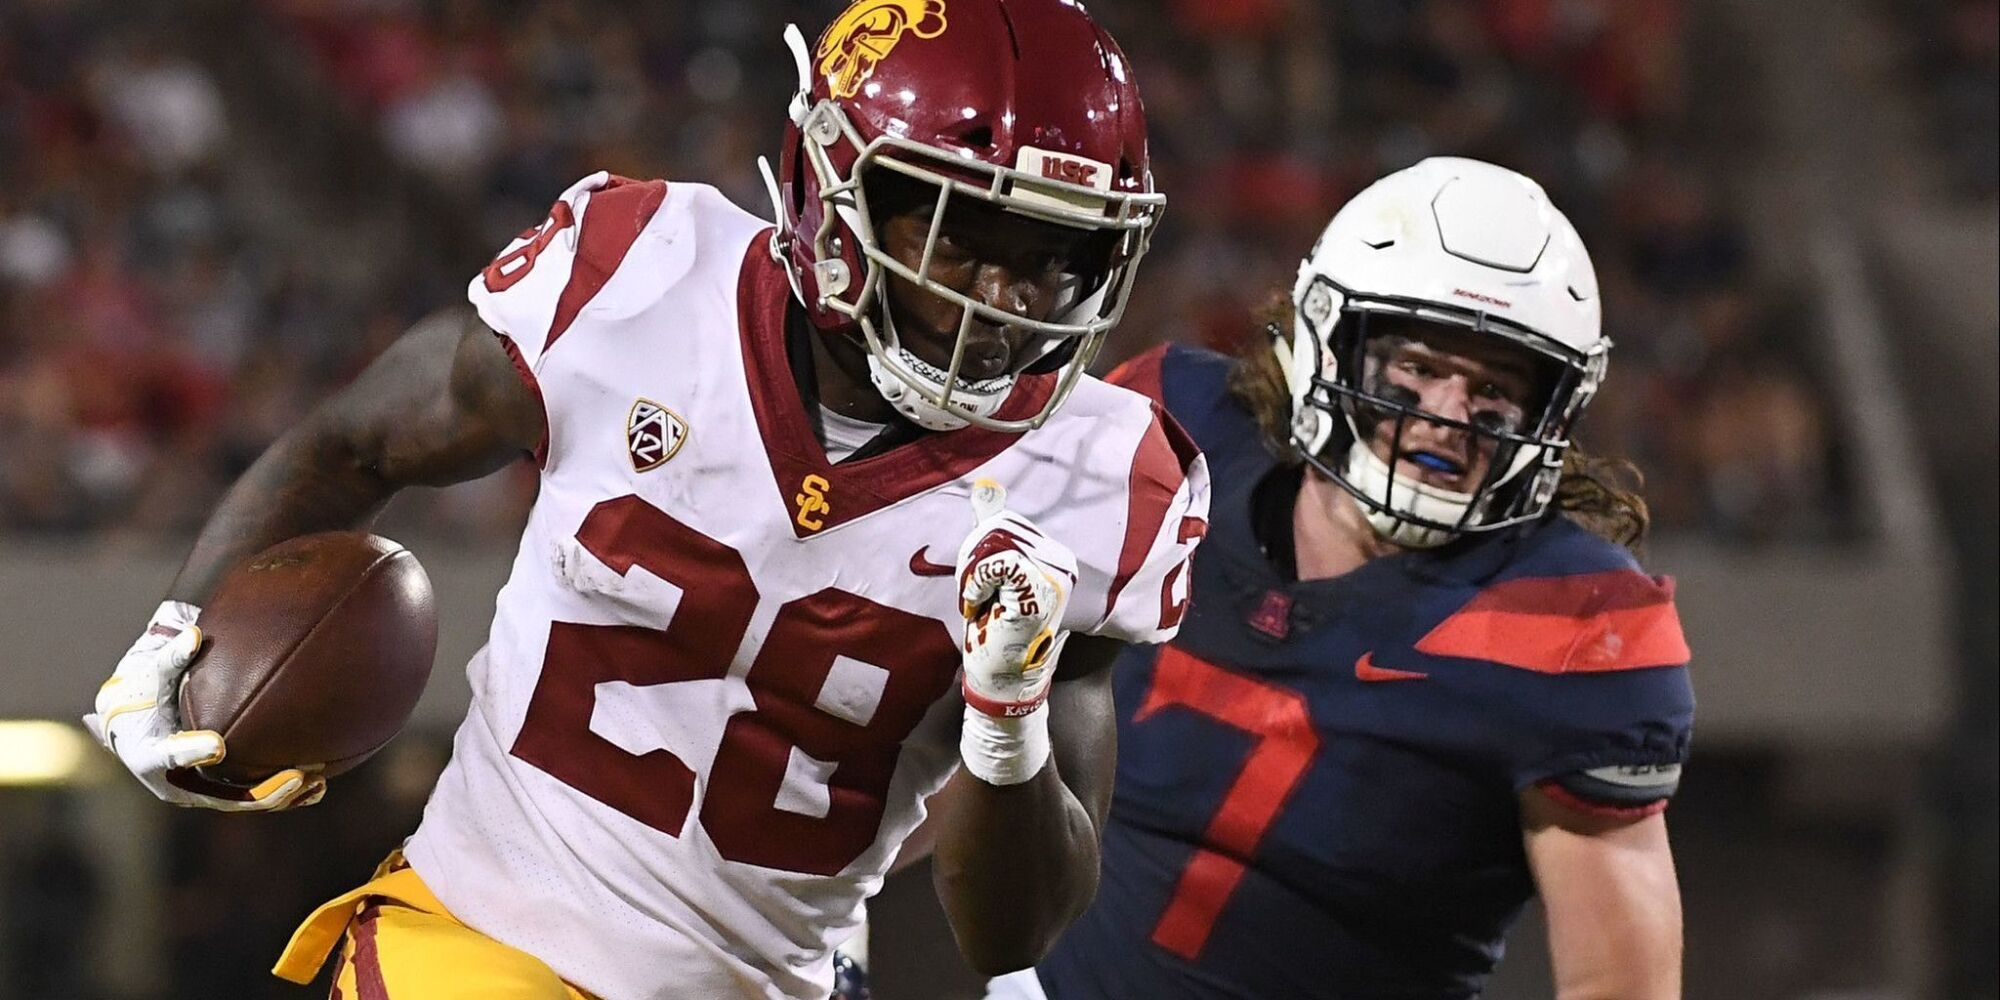 USC vs. Colorado: USC 31, Colorado 20